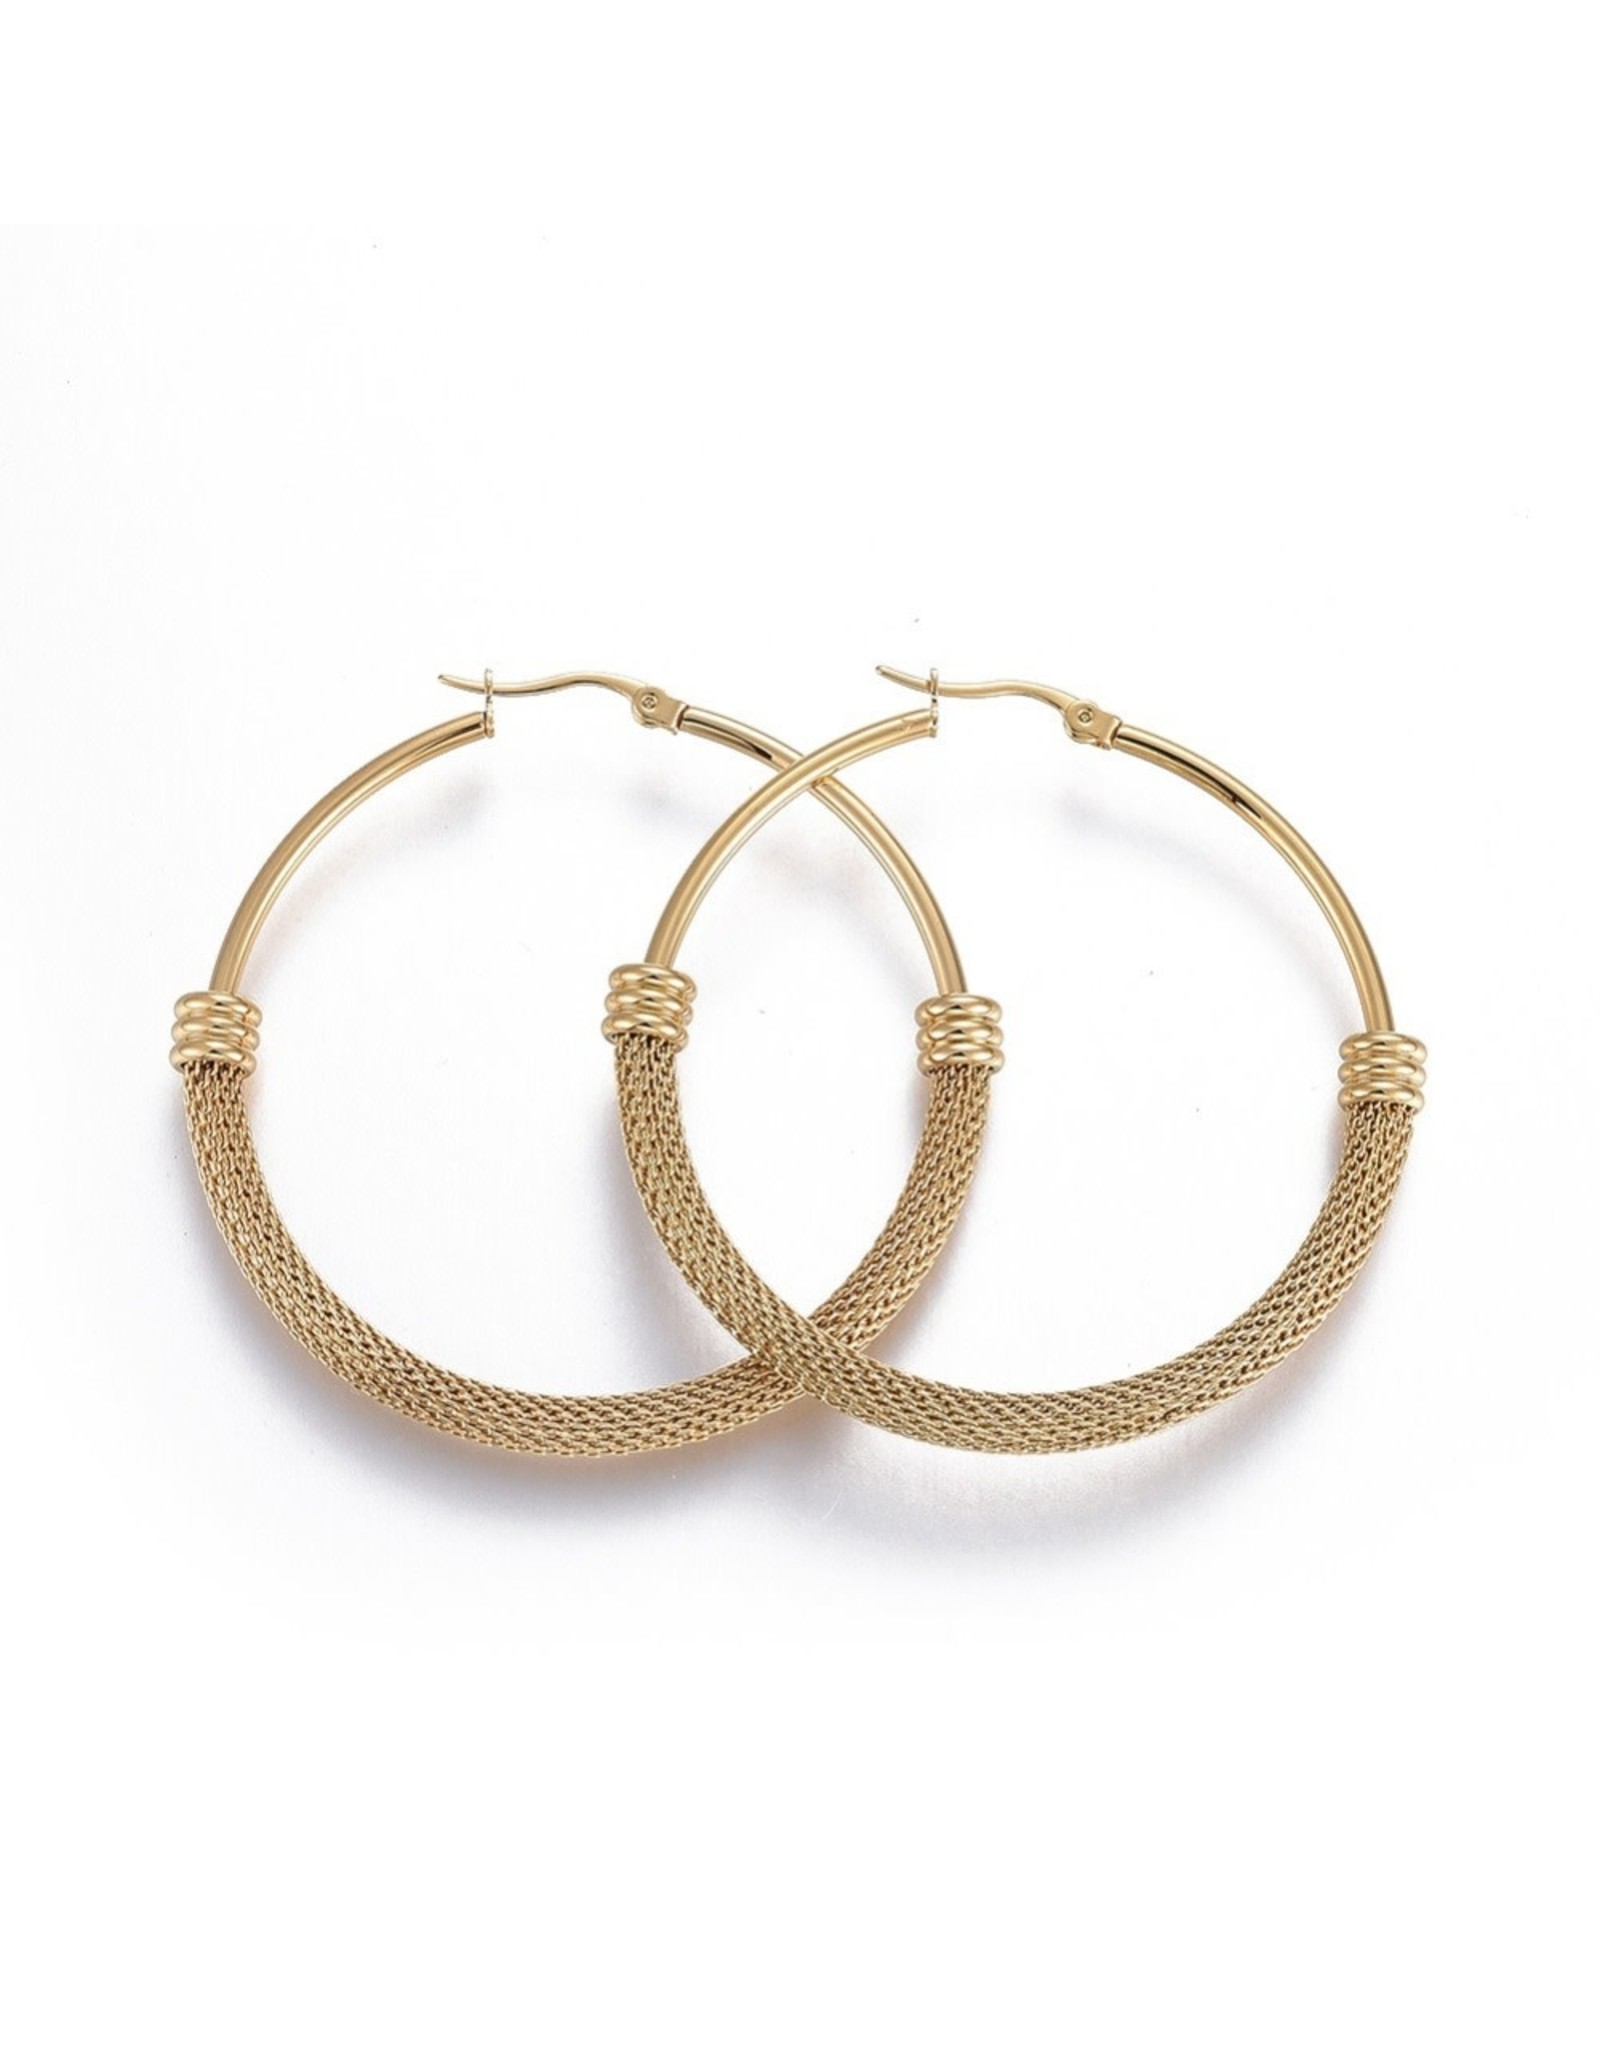 Hoop Earring 56x6mm Stainless Steel  Gold x1 Pair